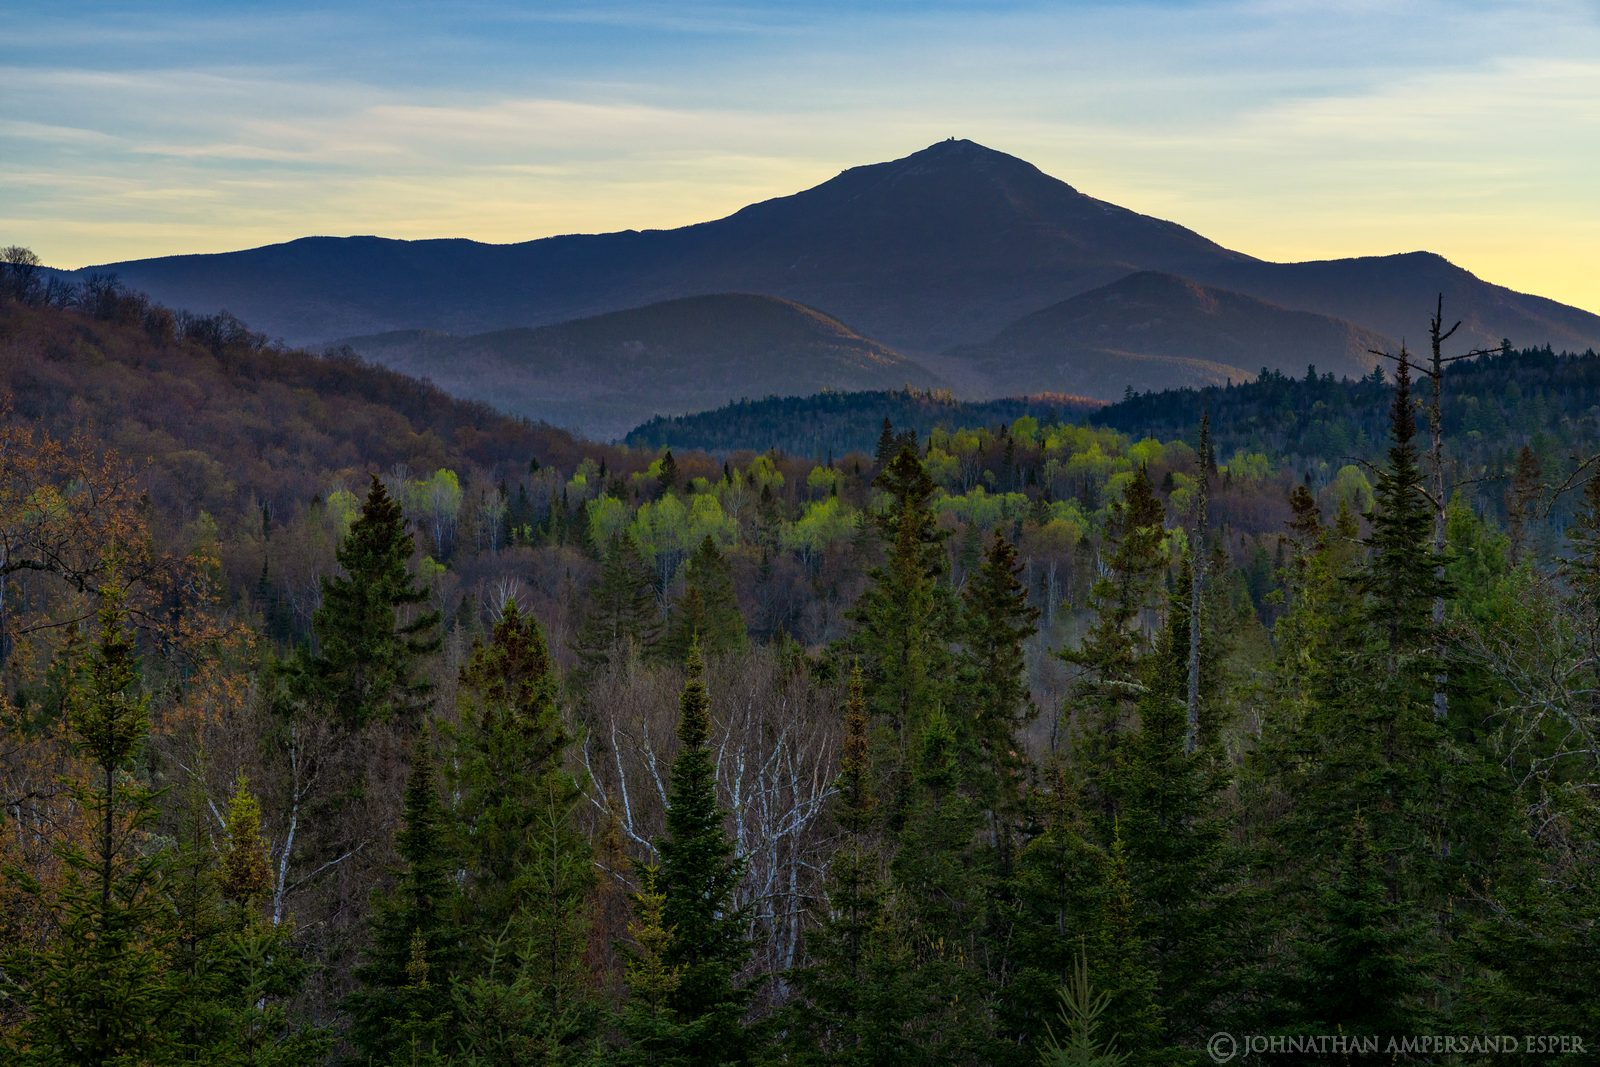 Whiteface Mt,River Rd,River Road,River Road Lodge,River Rd Lodge,balcony,spring,springtime,May,2020,Whiteface,Whiteface Mountain,sunrise,green,, photo